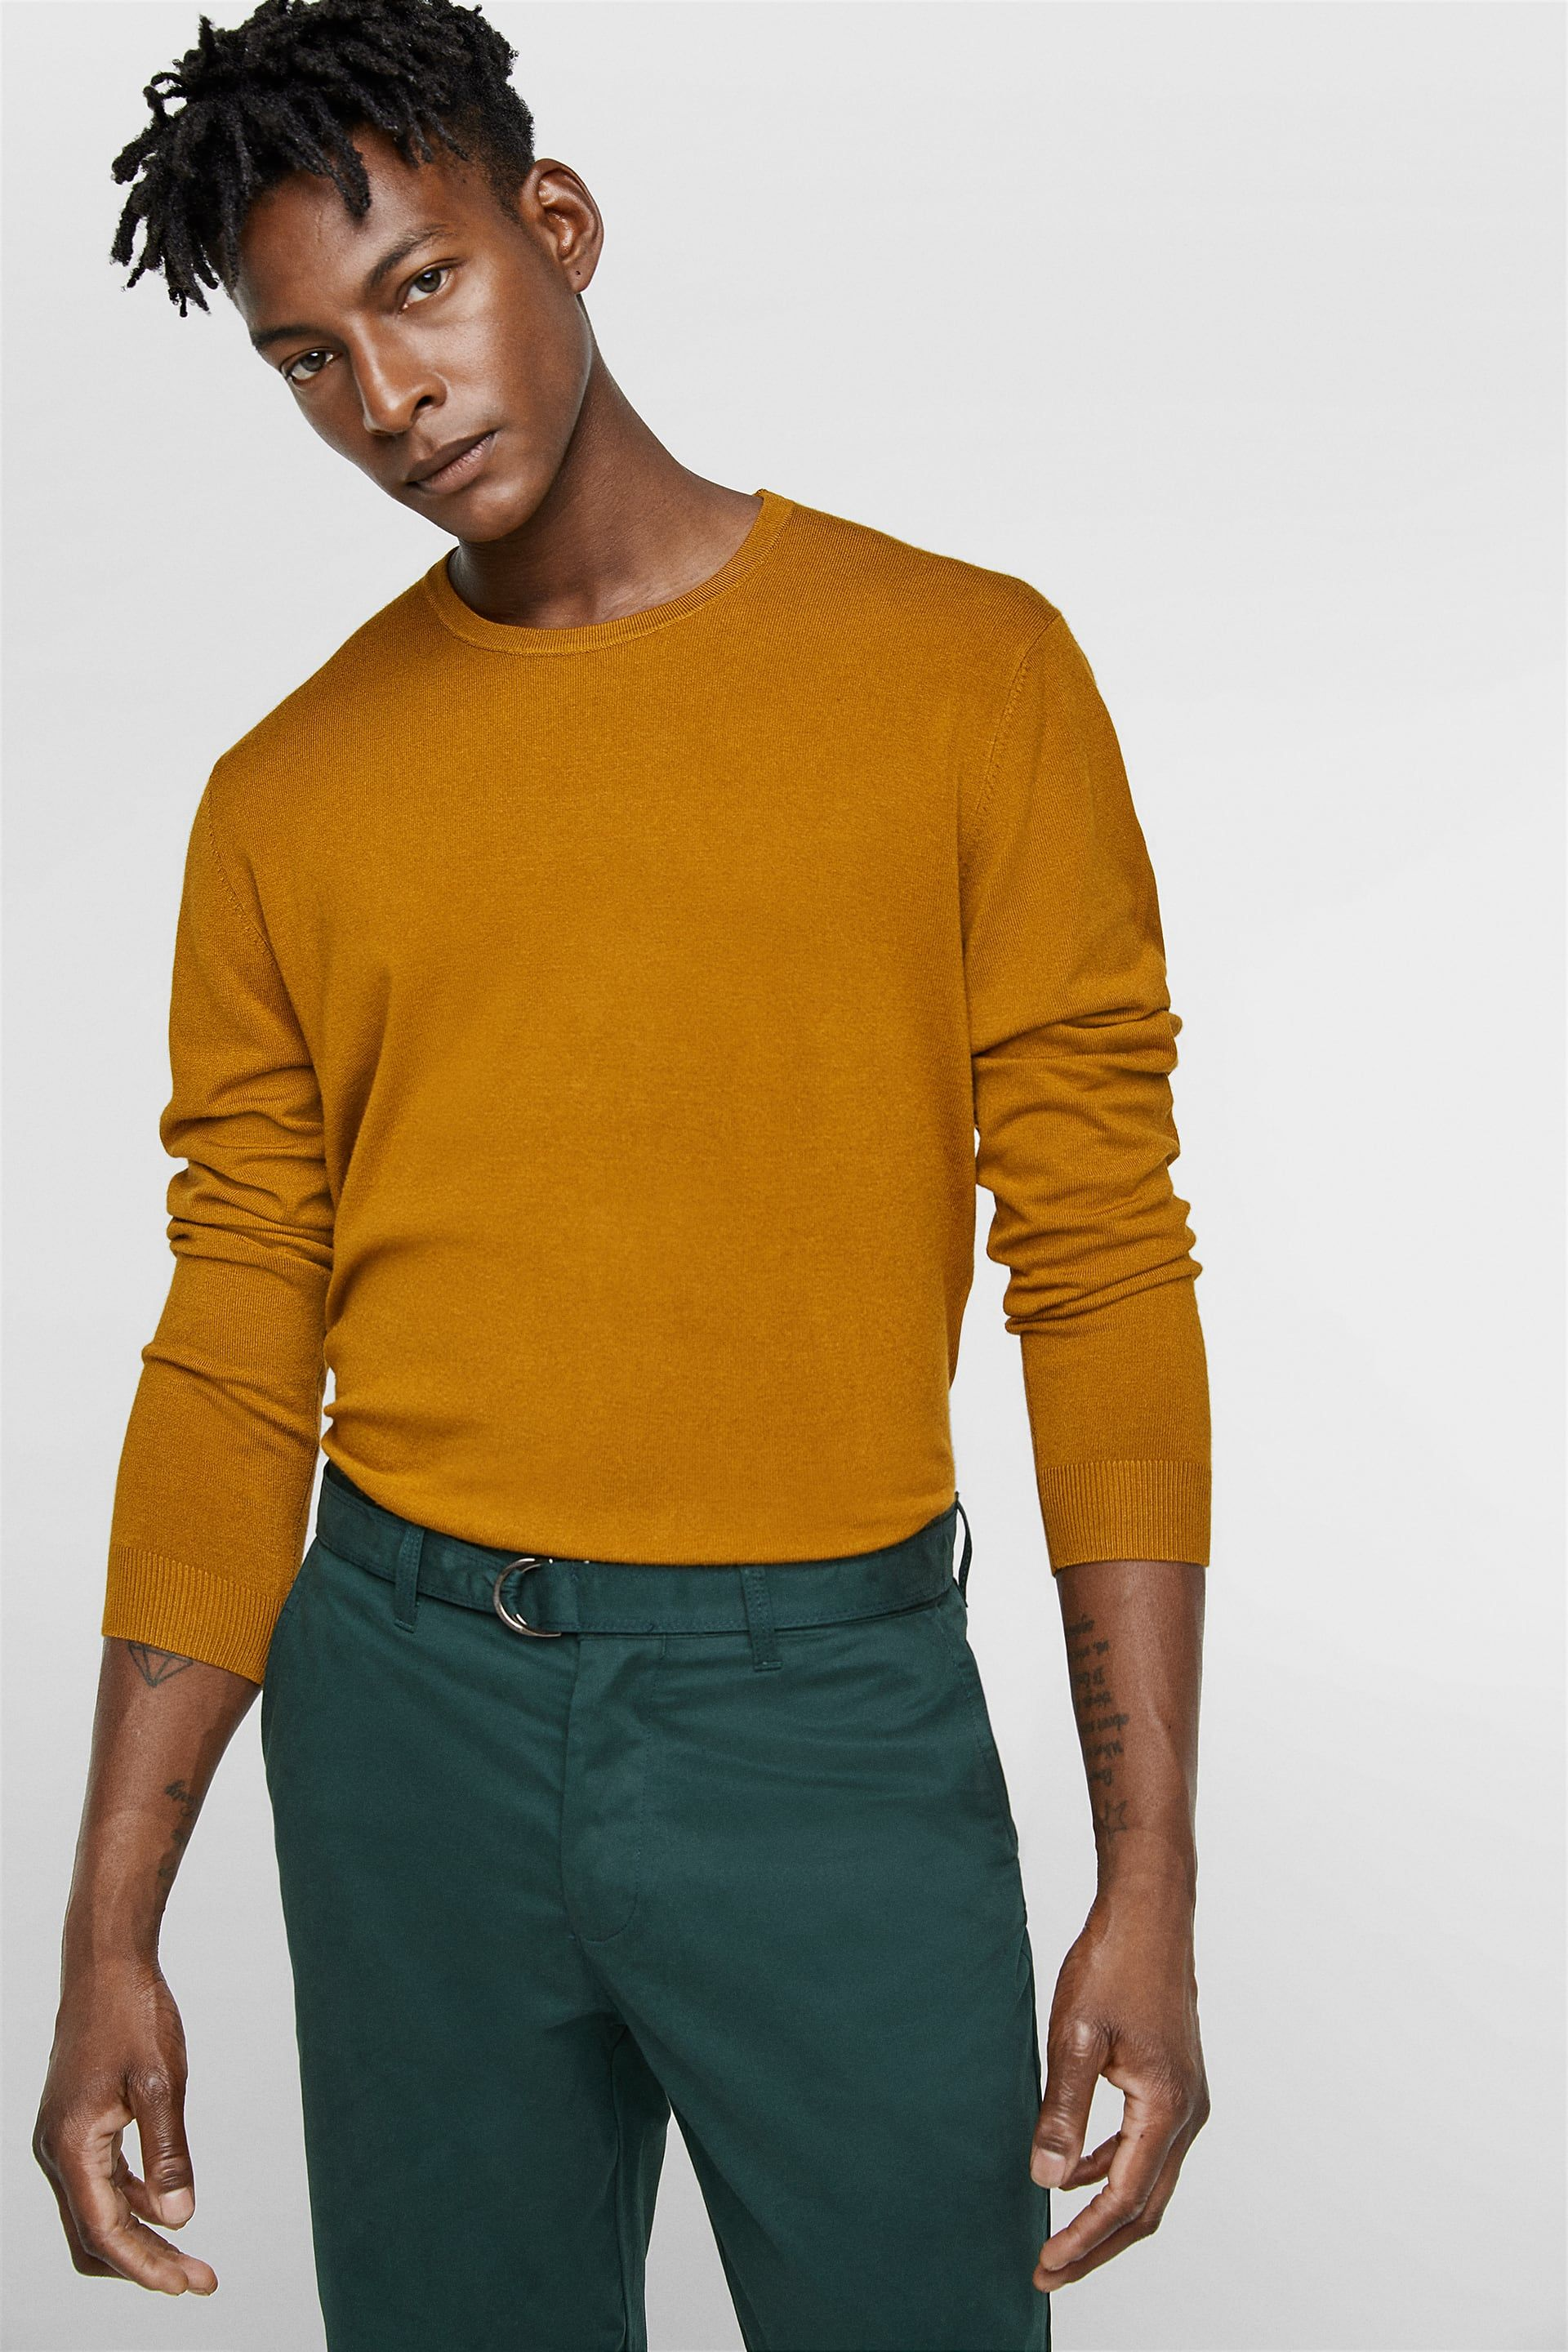 be300fe3a2 ROUND NECK SWEATER - Item available in more colors | Closet | Men ...